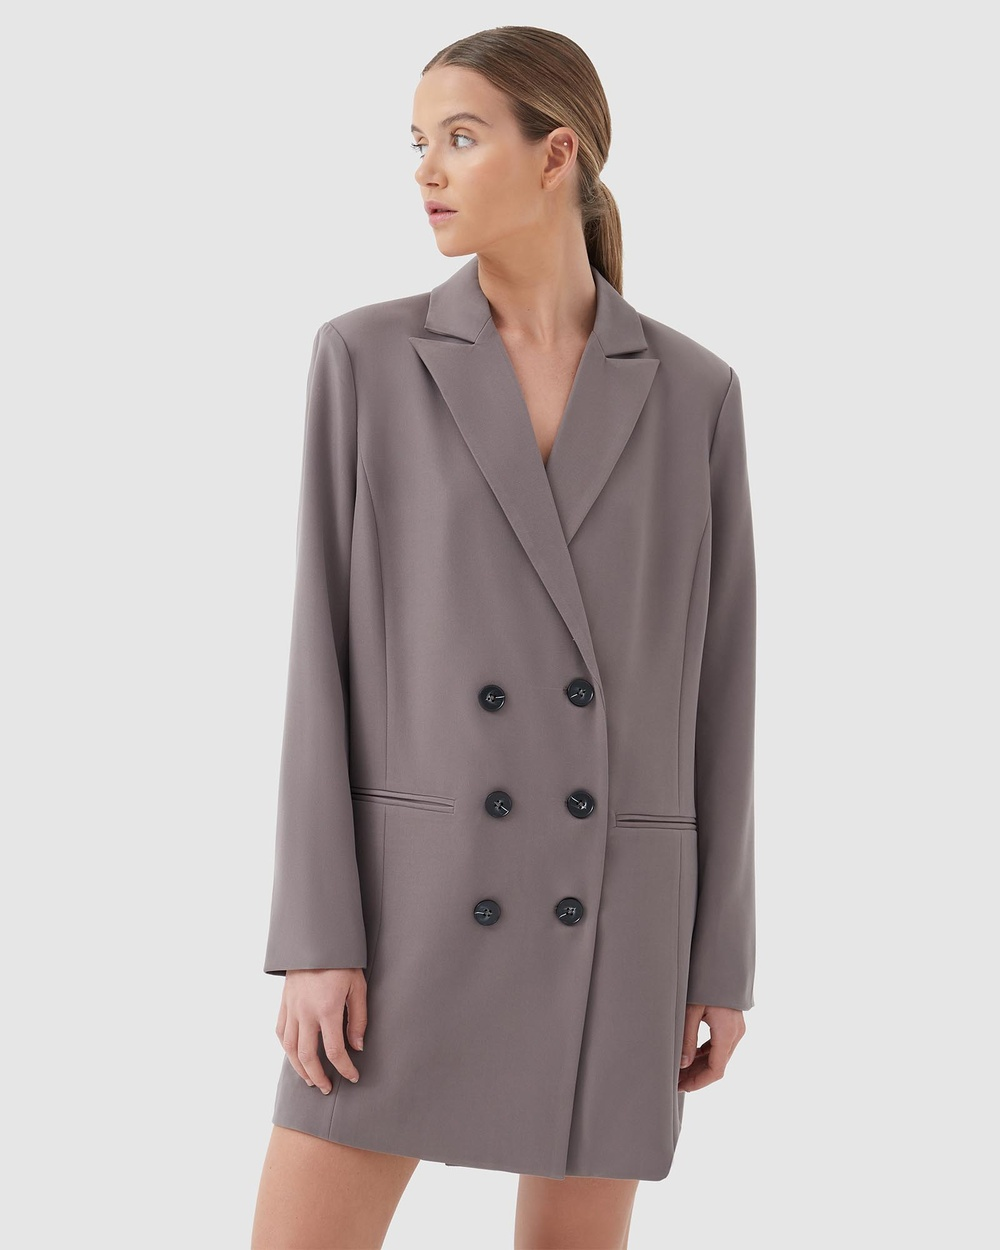 4th & Reckless Delphine Blazer Dresses Taupe